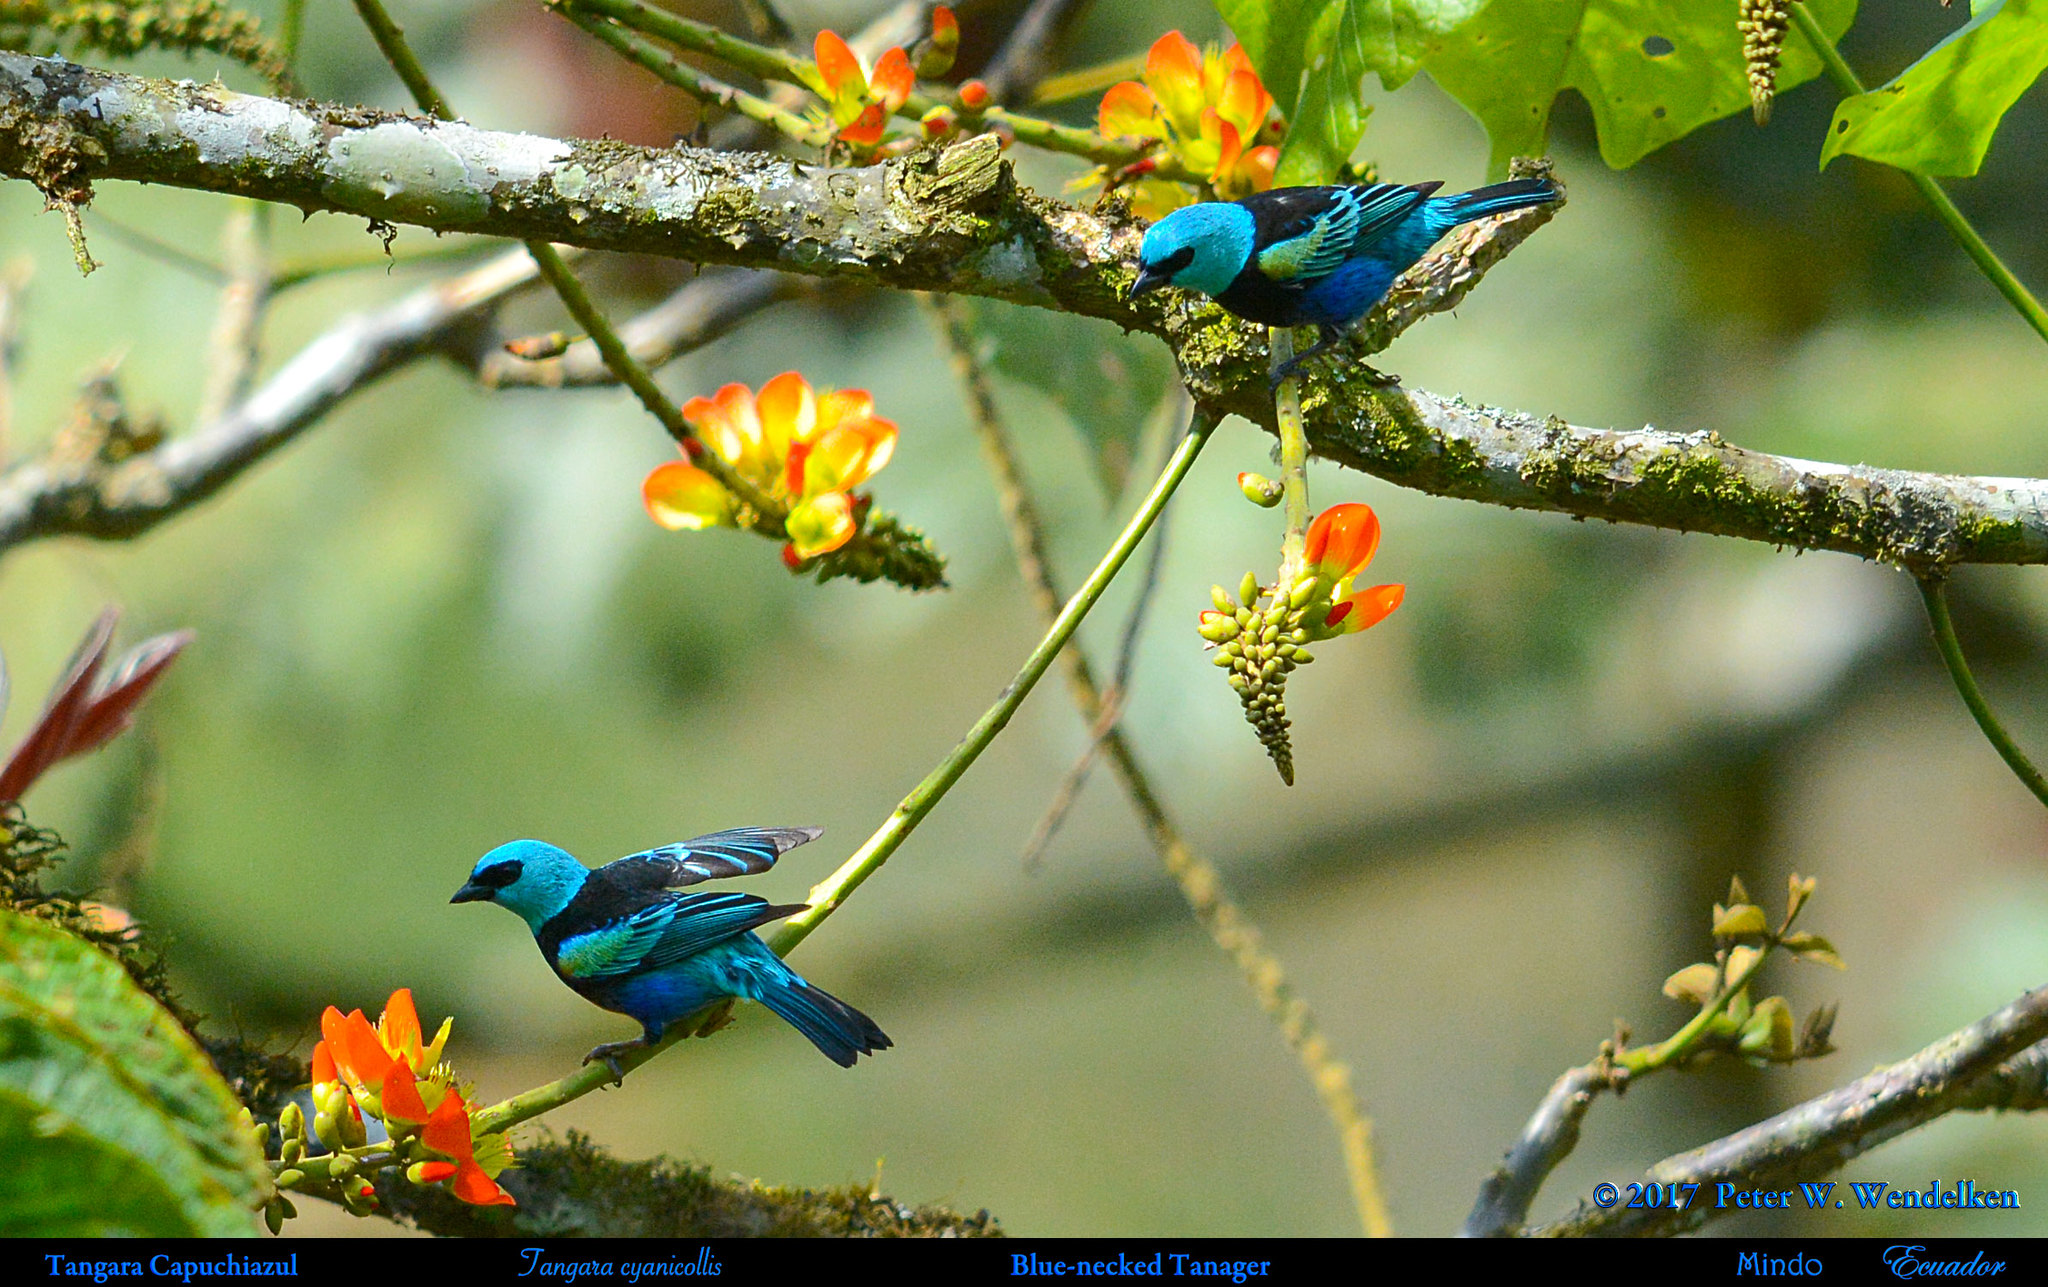 A Pair of BLUE-NECKED TANAGERS Tangara cyanicollis Seeking Nectar in Mindo, ECUADOR. Tanager Photo by Peter Wendelken.